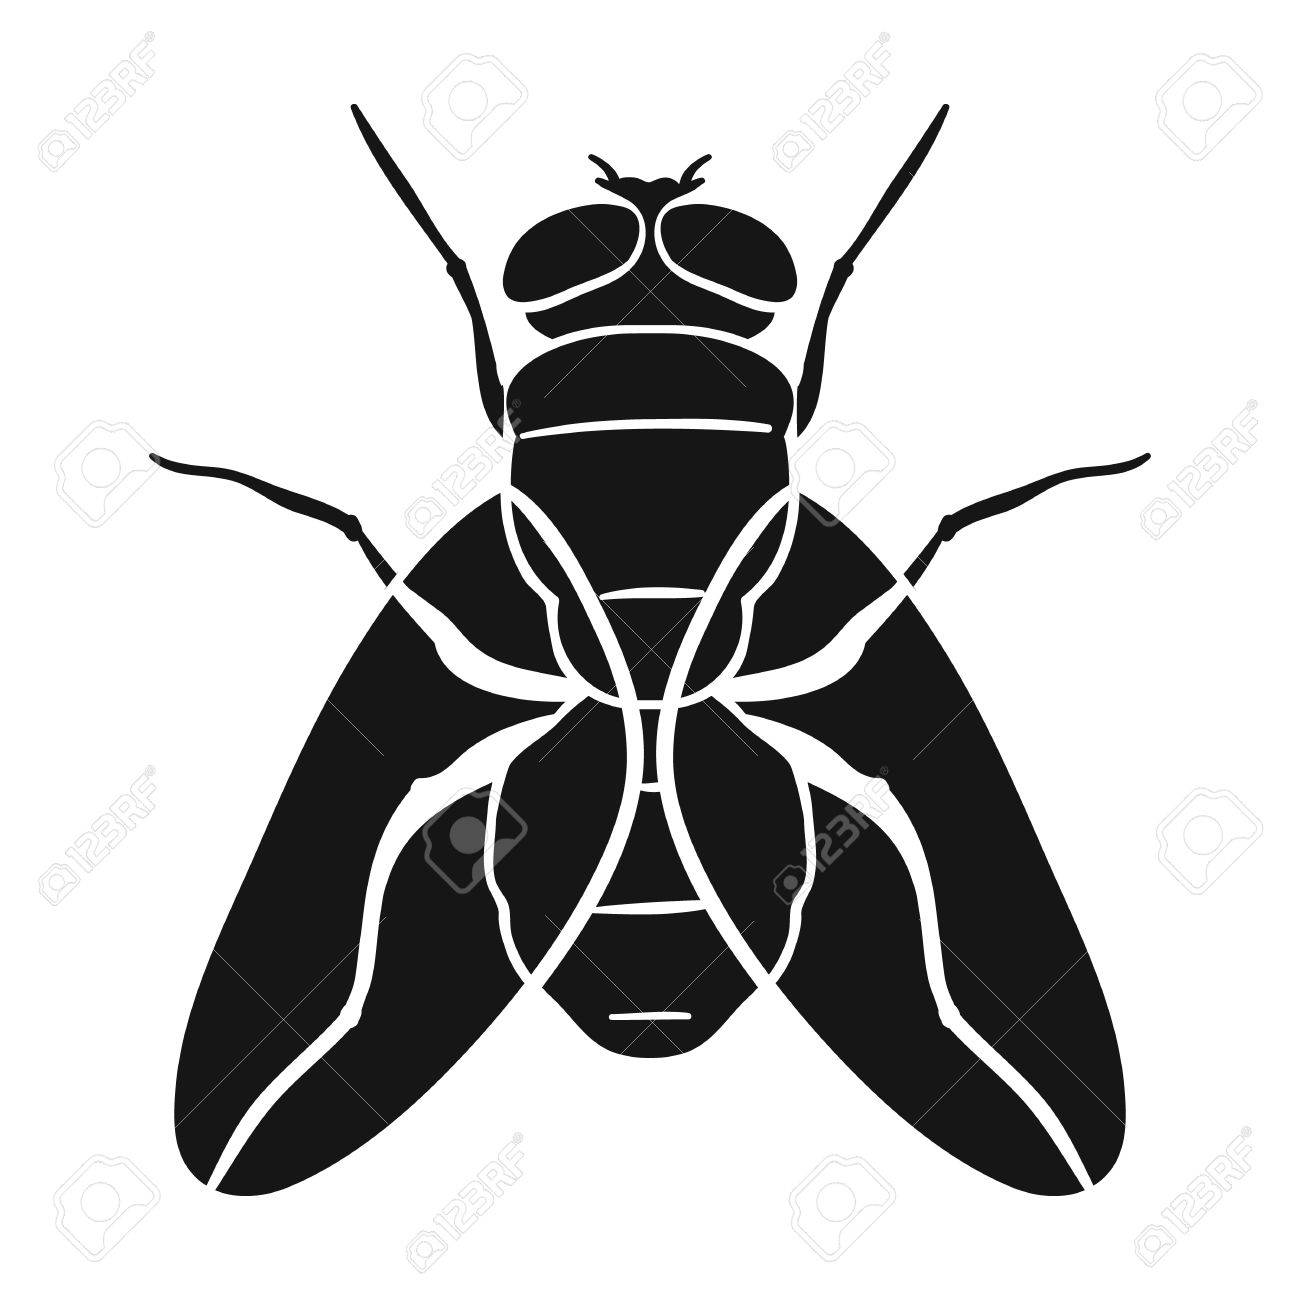 Fly icon in black design isolated on white background. Insects symbol stock vector illustration. - 67722611